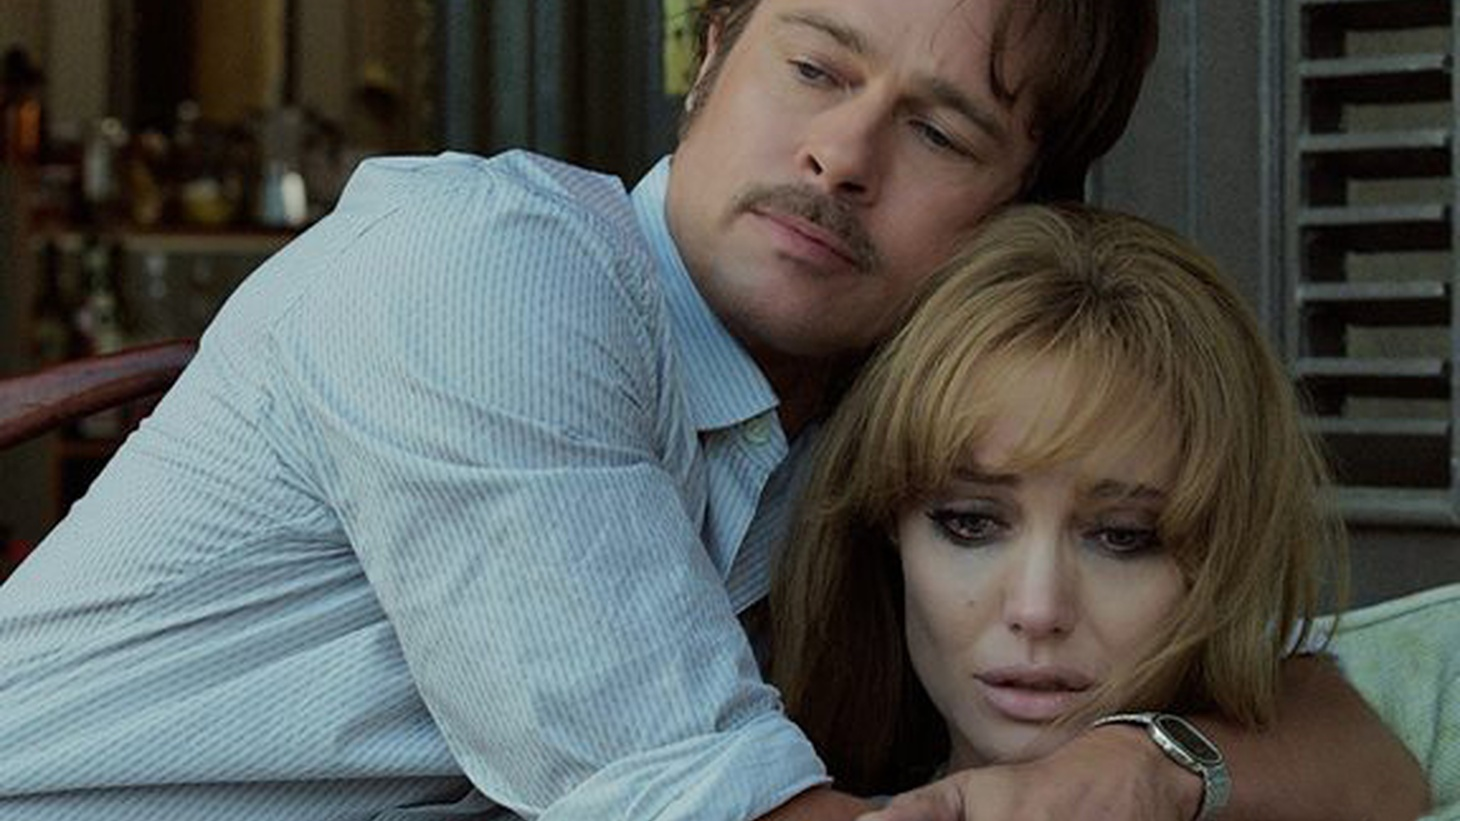 WEB EXCLUSIVE: By the Sea takes place sometime during the mid-1970's in a coastal village in the south of France.